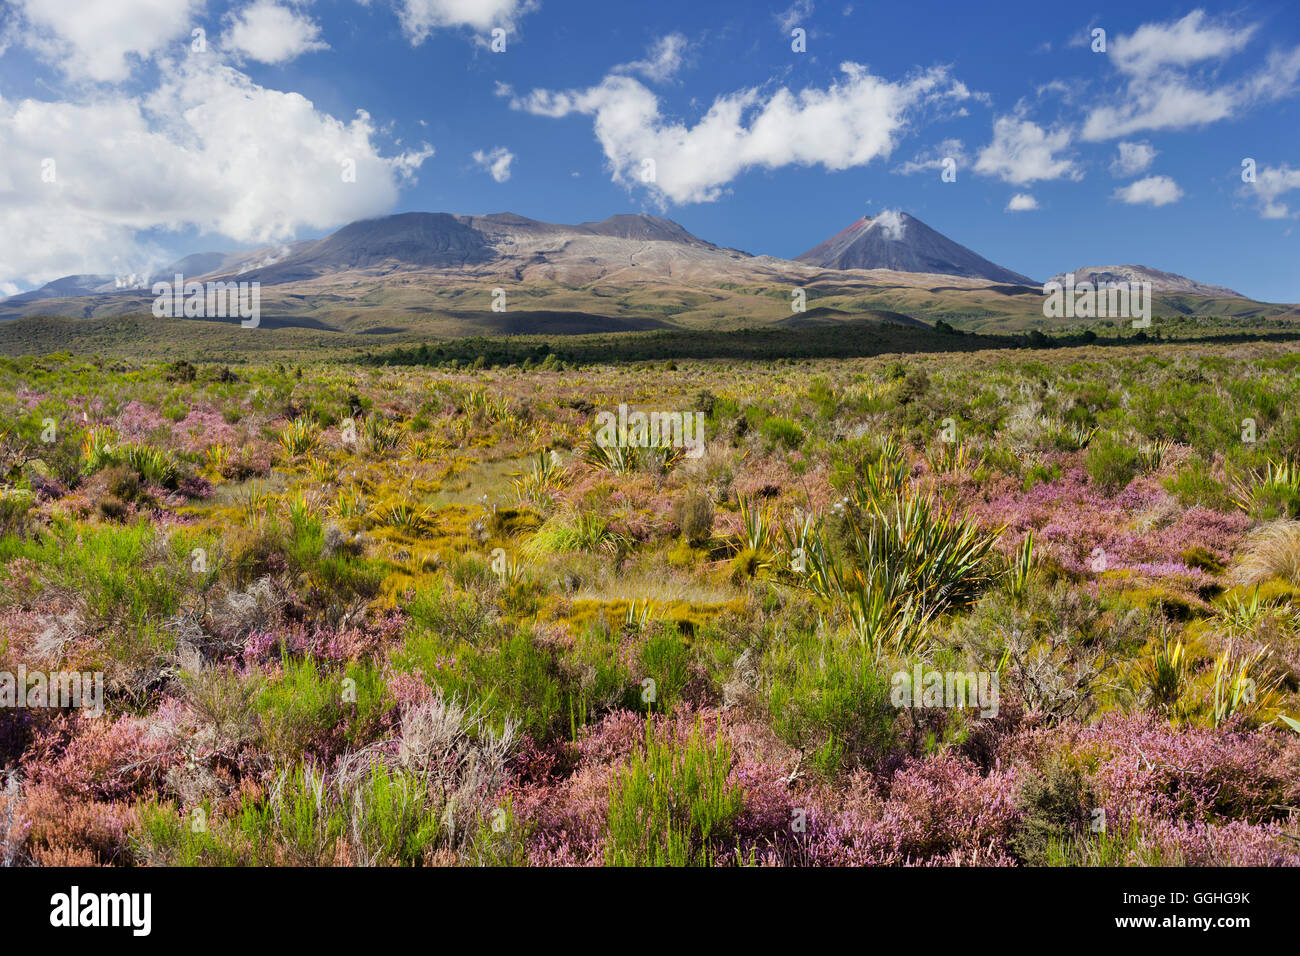 Flowering heather (Ericaceae), Mount Ngauruhoe, Tongariro Nationalpark, Manawatu-Manganui, North Island, New Zealand - Stock Image